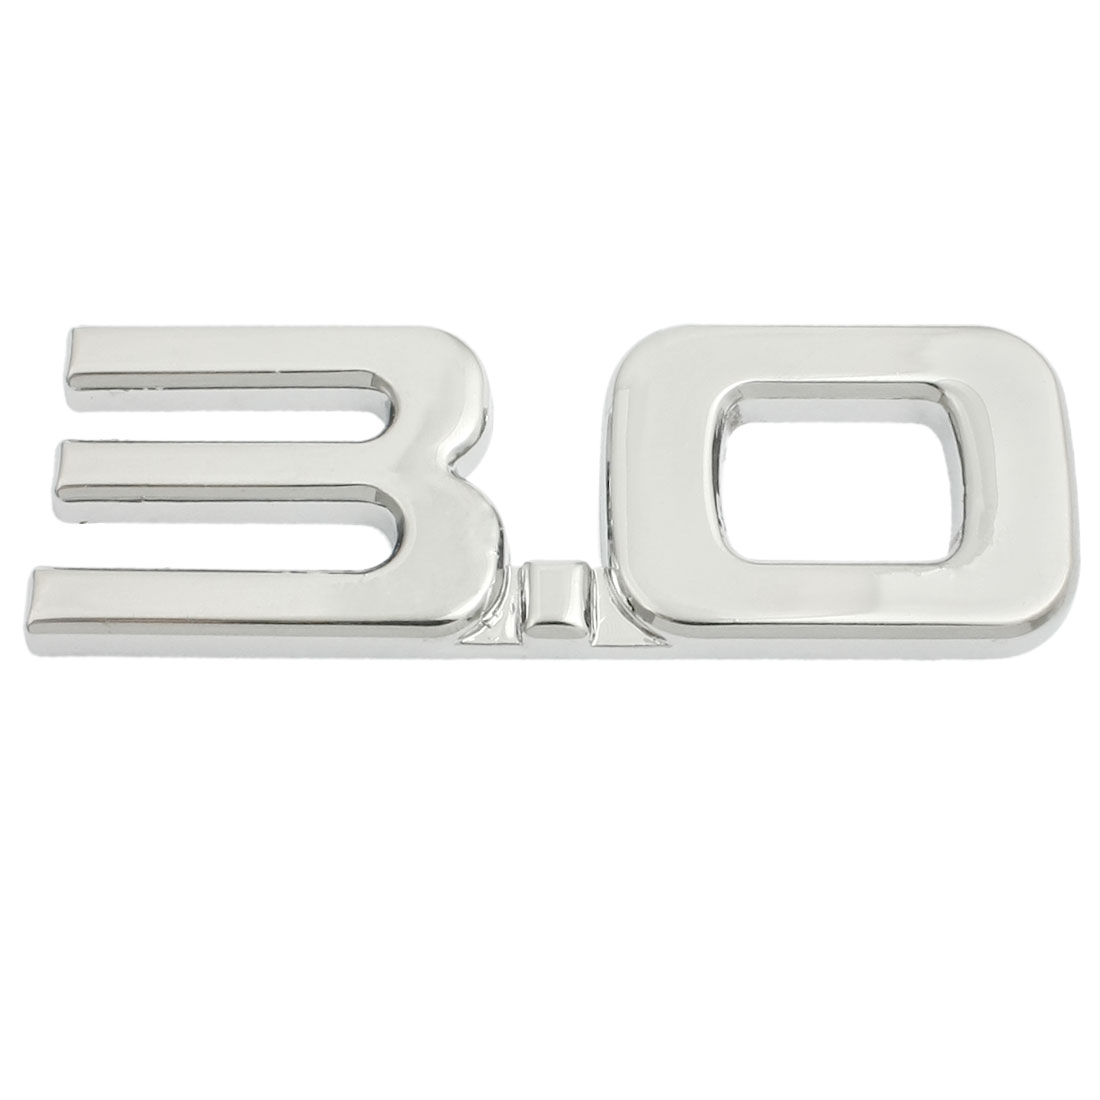 Vehicle Auto Decoration 3.0 Displacement Emblem Badge Sticker Silver Tone